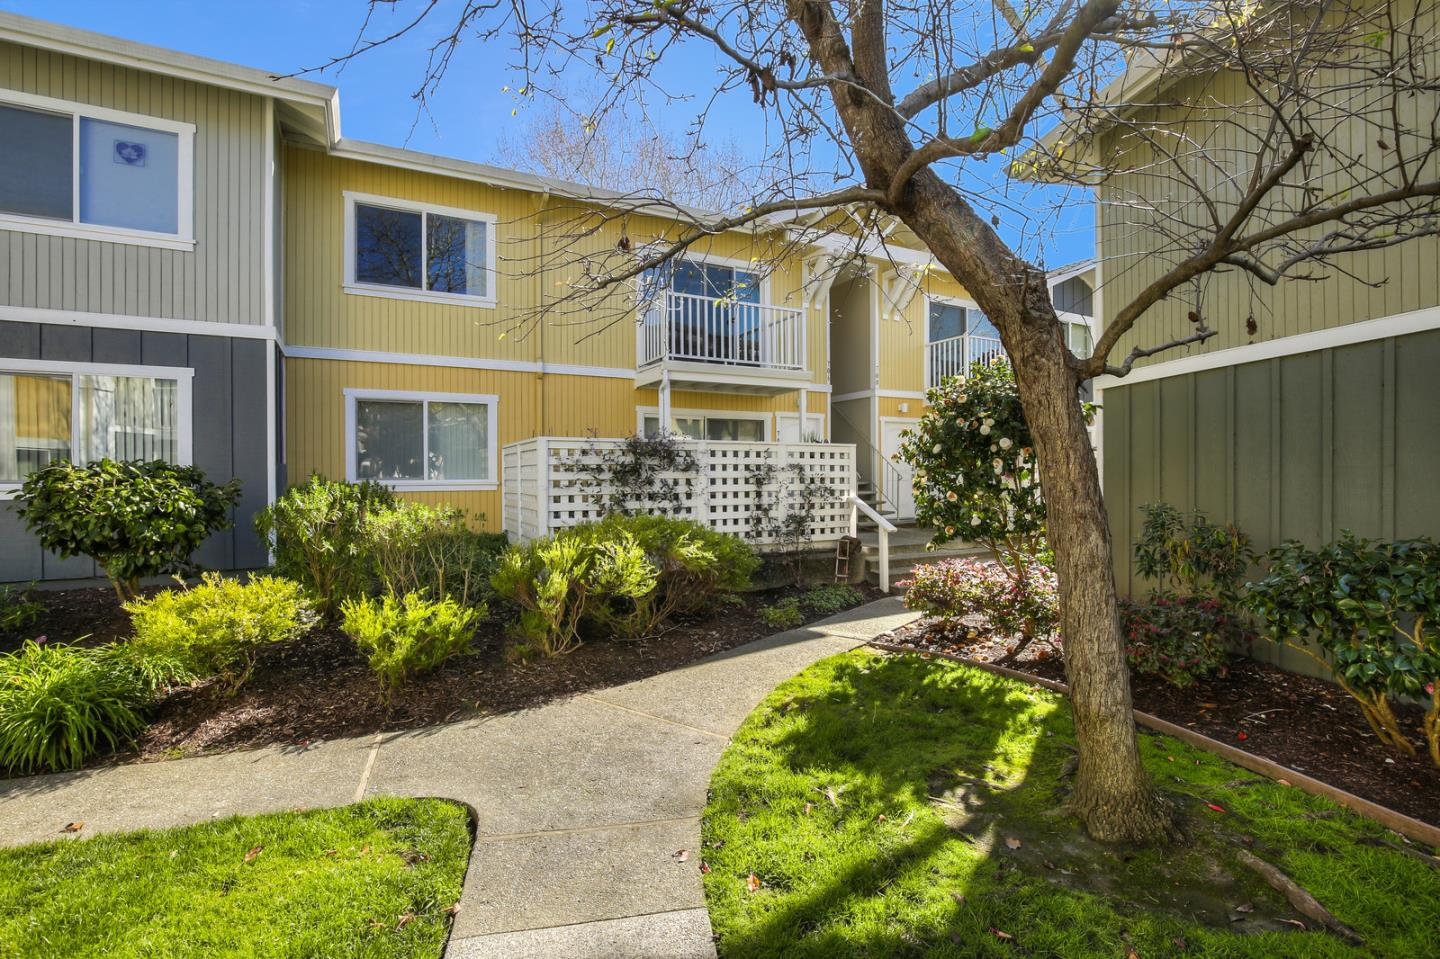 Super sweet condo just minutes walk to the best beaches in Santa Cruz, restaurants, coffee shops, brewery and Farmer's Market, truly one of the best beach locations.  Well maintained complex with great pool, gym, clubhouse and several outdoor BBQ areas.  The unit is on the top floor with lots of light and a deck.  Open concept kitchen and living room.  The kitchen has quartz counter tops and stainless steel appliances.  The bedroom has a large walk in closet and room for a desk.  The HOA fee is quite reasonable and covers water, garbage and sewer.  This is the ideal place for you if you want to park your car and walk or ride your bike to everything that Santa Cruz has to offer.